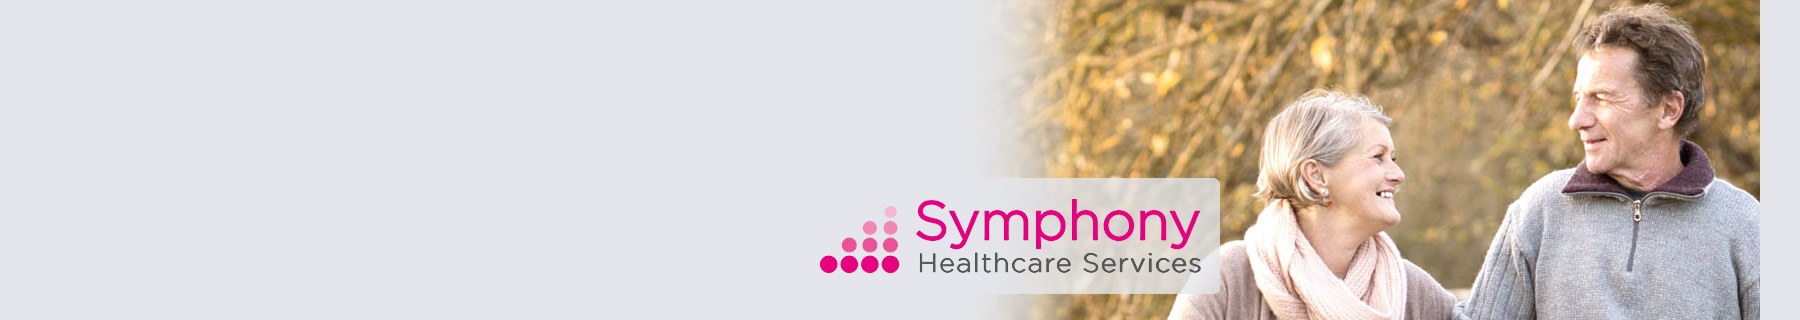 Surgery Connect provides Symphony Healthcare Services with a primary care at scale organisation wide telephony improving patient experience and staff productivity